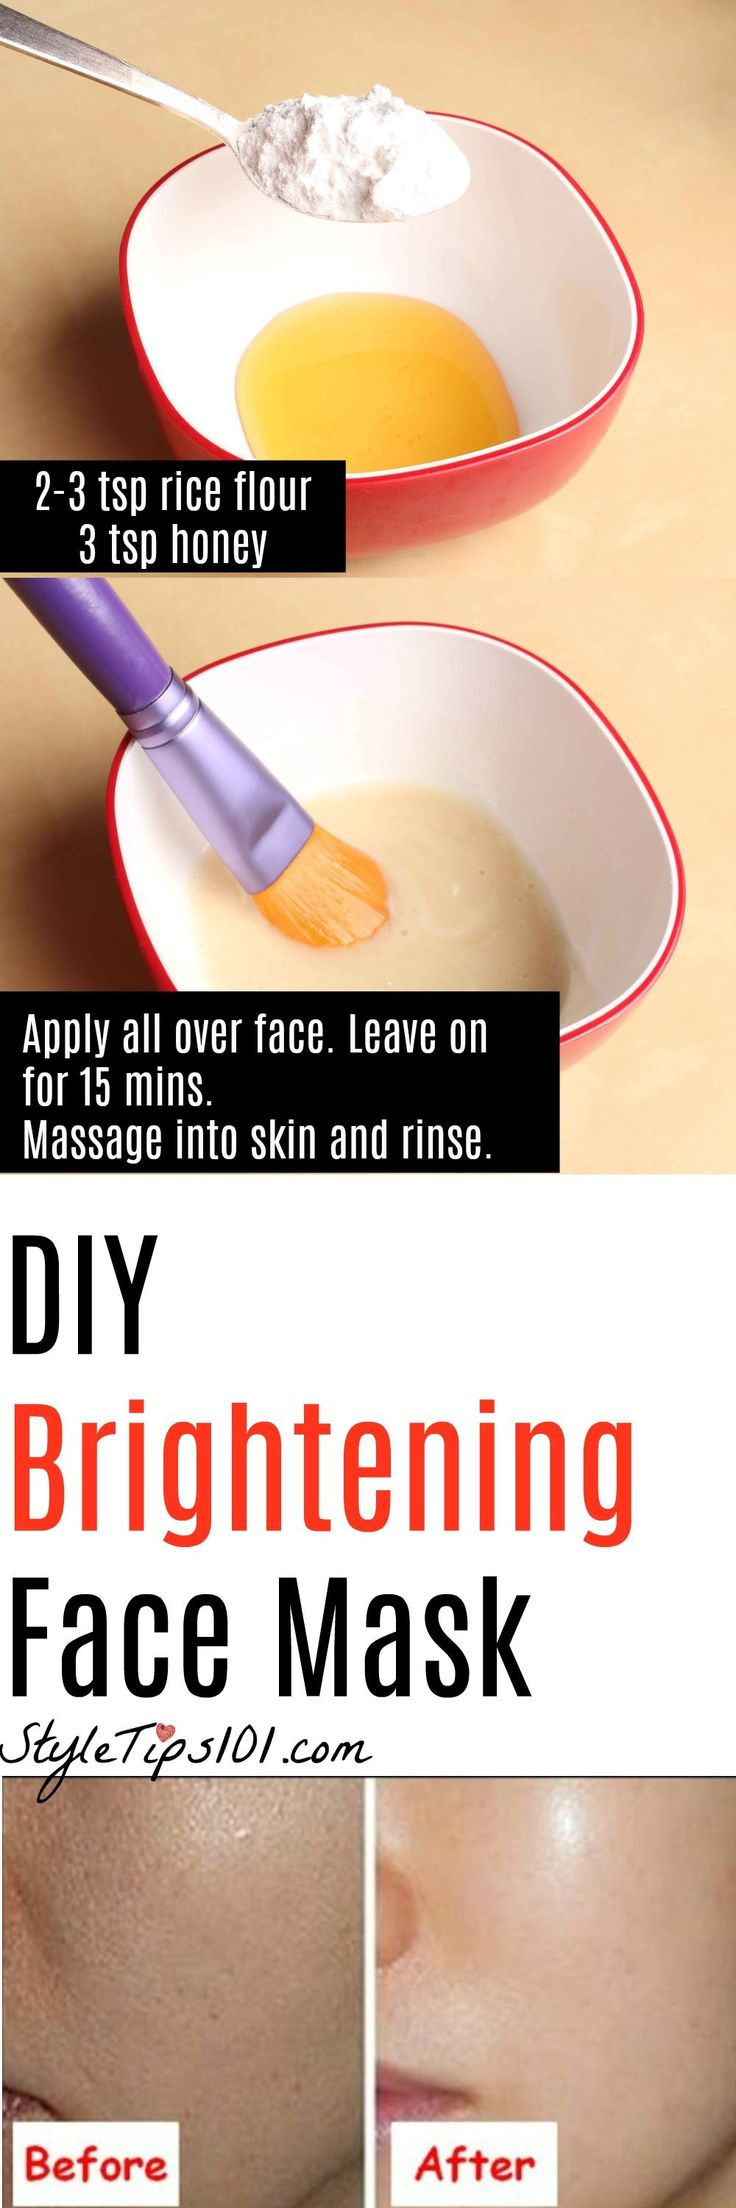 DIY Face Brightening Mask